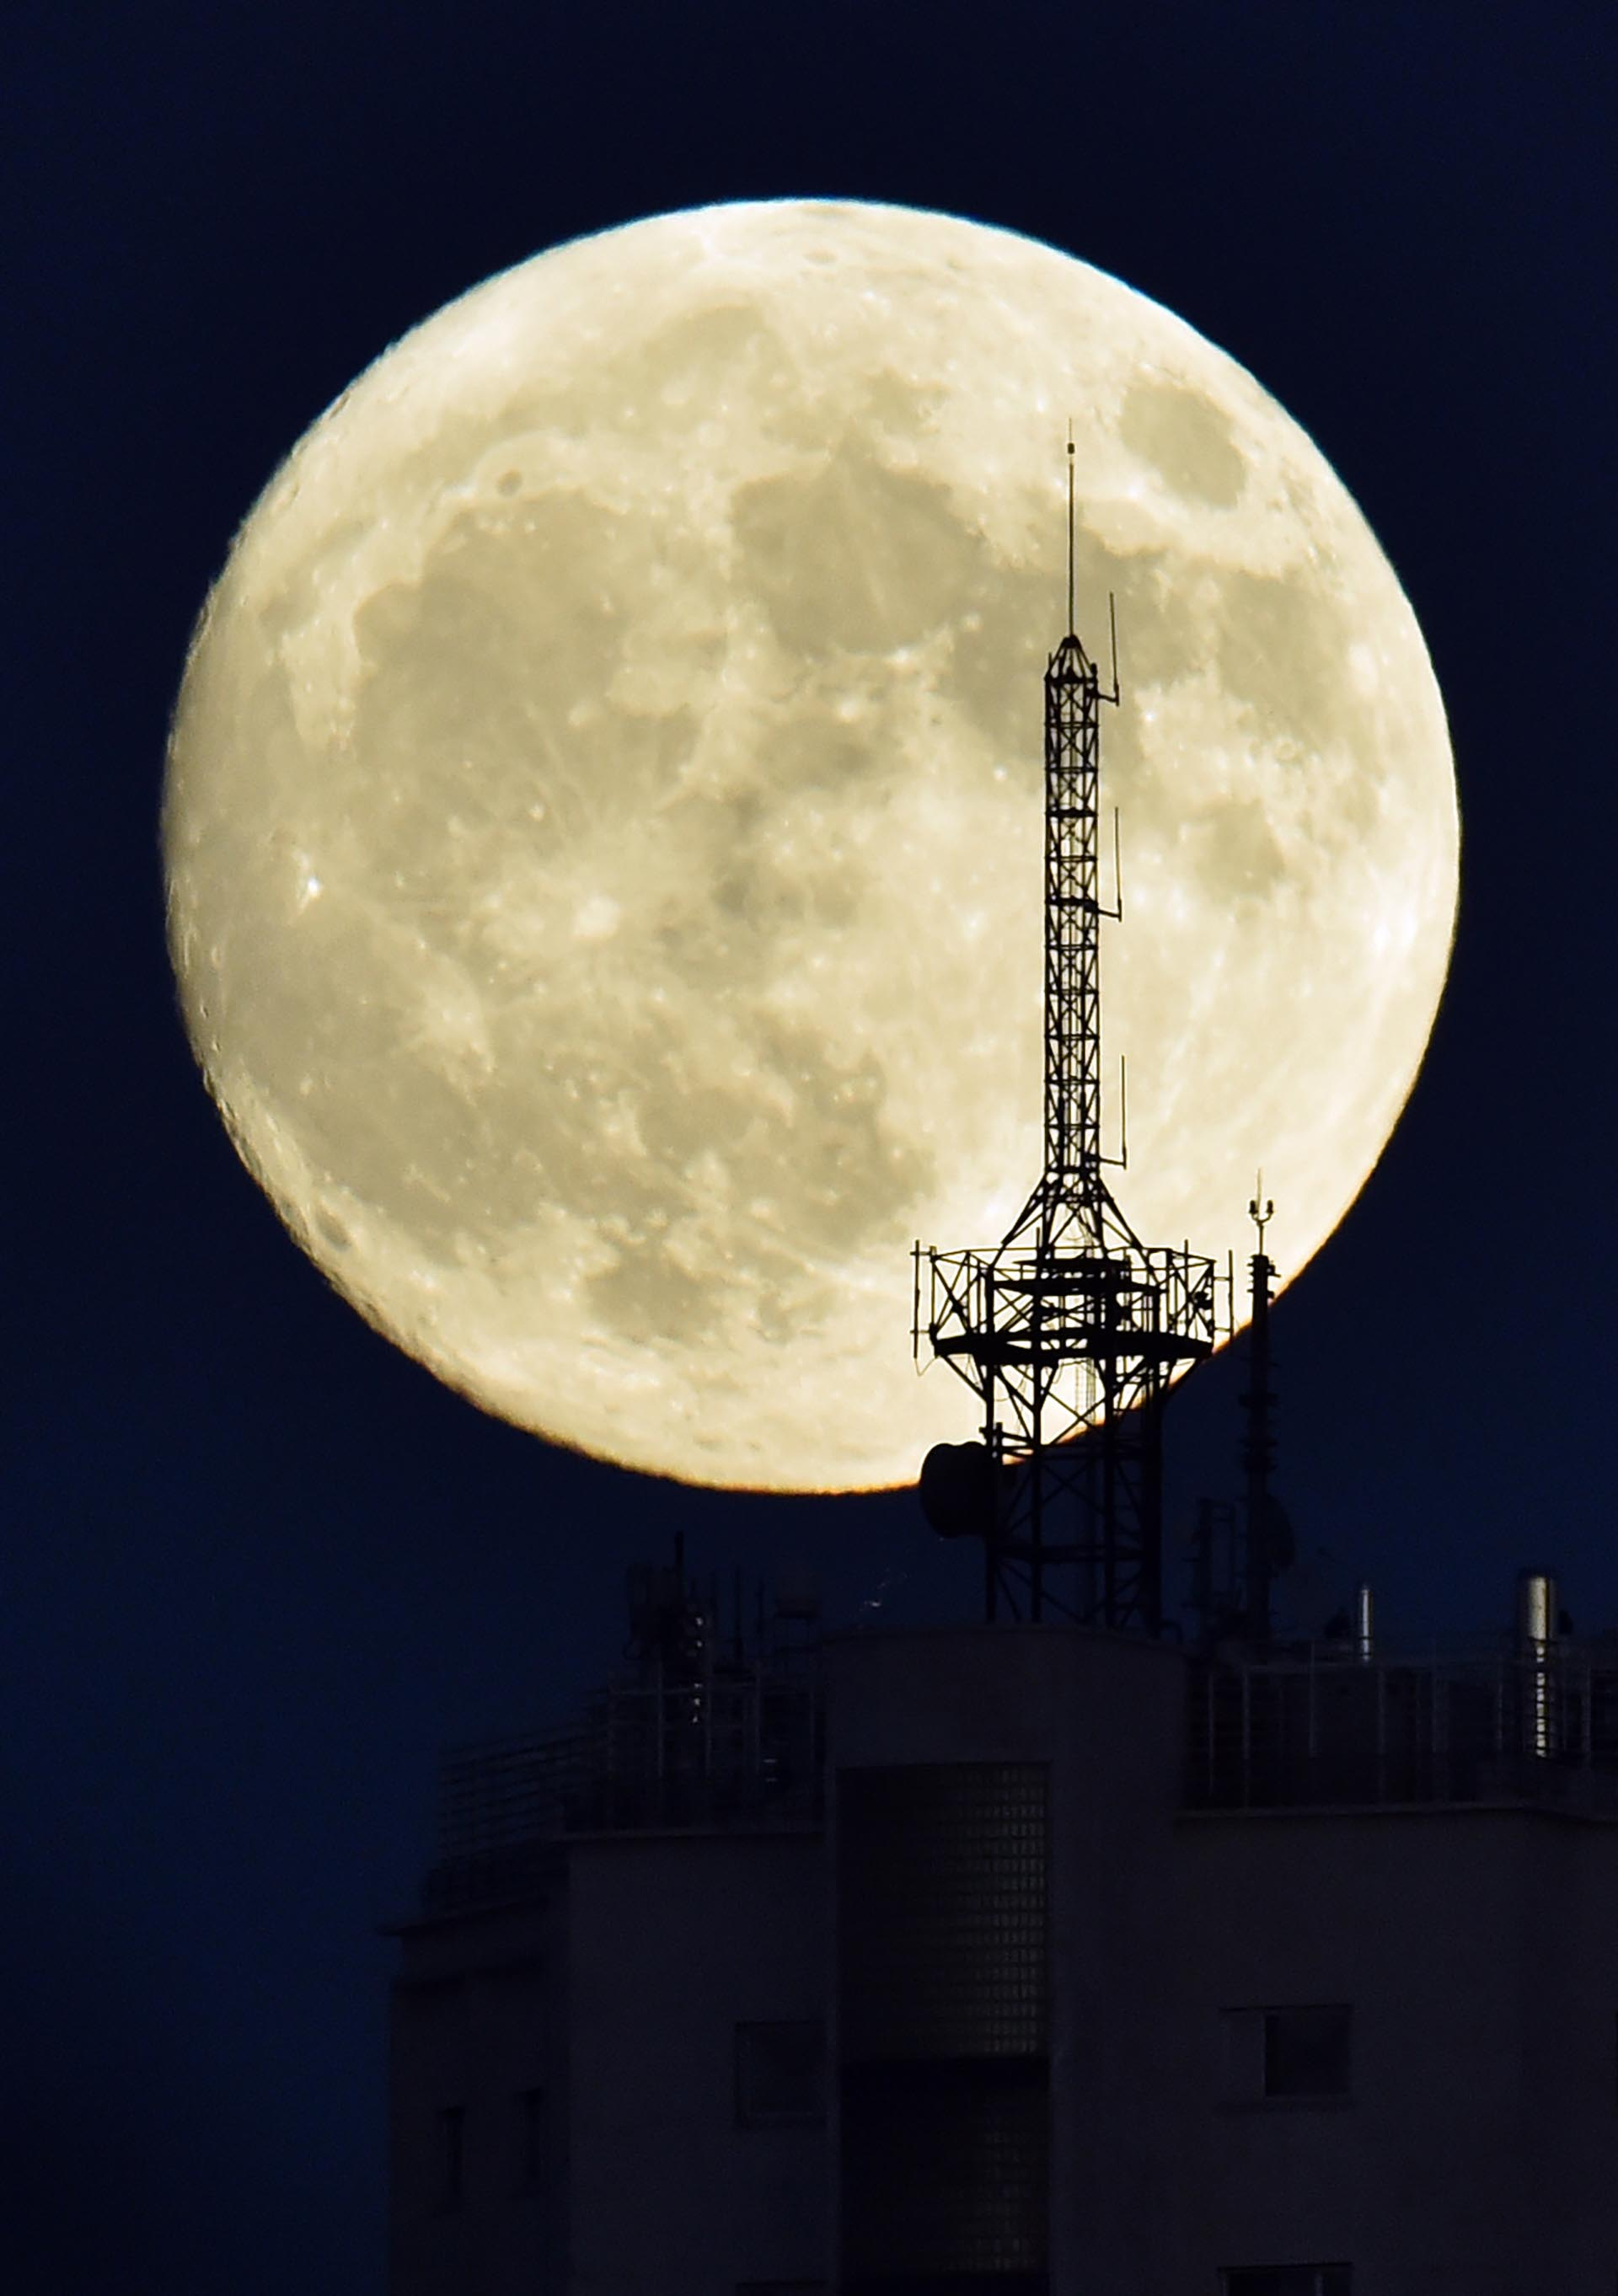 """The moon rises over an antenna on the top of a building in Madrid on November 13, 2016, on the eve of a """"supermoon"""". On November 14, 2016, the moon will orbit closer to the earth than at any time since 1948, named a 'supermoon', it is defined by a Full or New moon coinciding with the moon's closest approach to the Earth. / AFP PHOTO / GERARD JULIEN"""